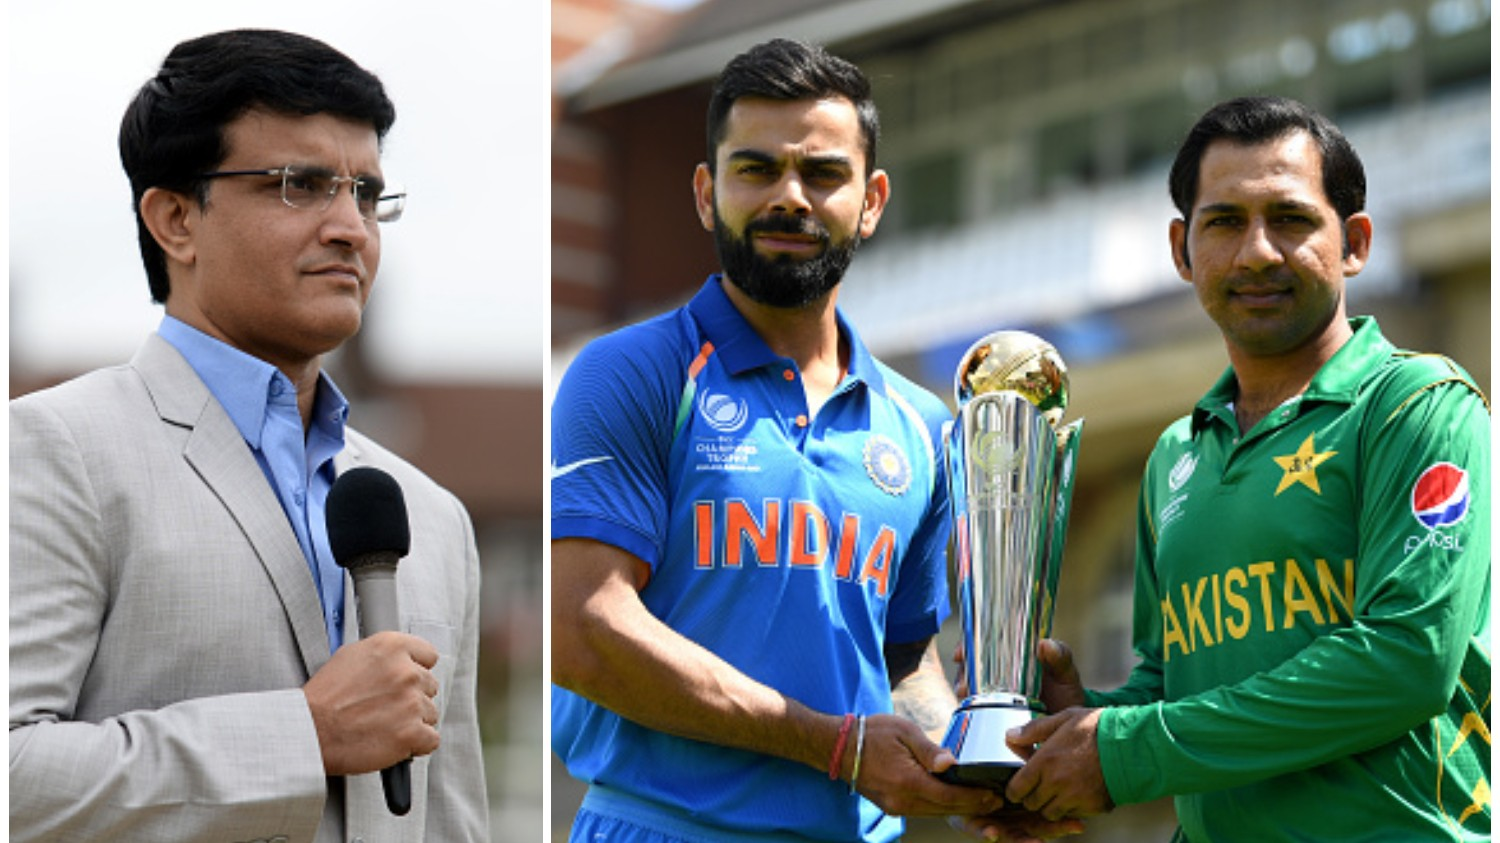 CWC 2019: Sourav Ganguly has his say on the much awaited Indo-Pak World Cup clash